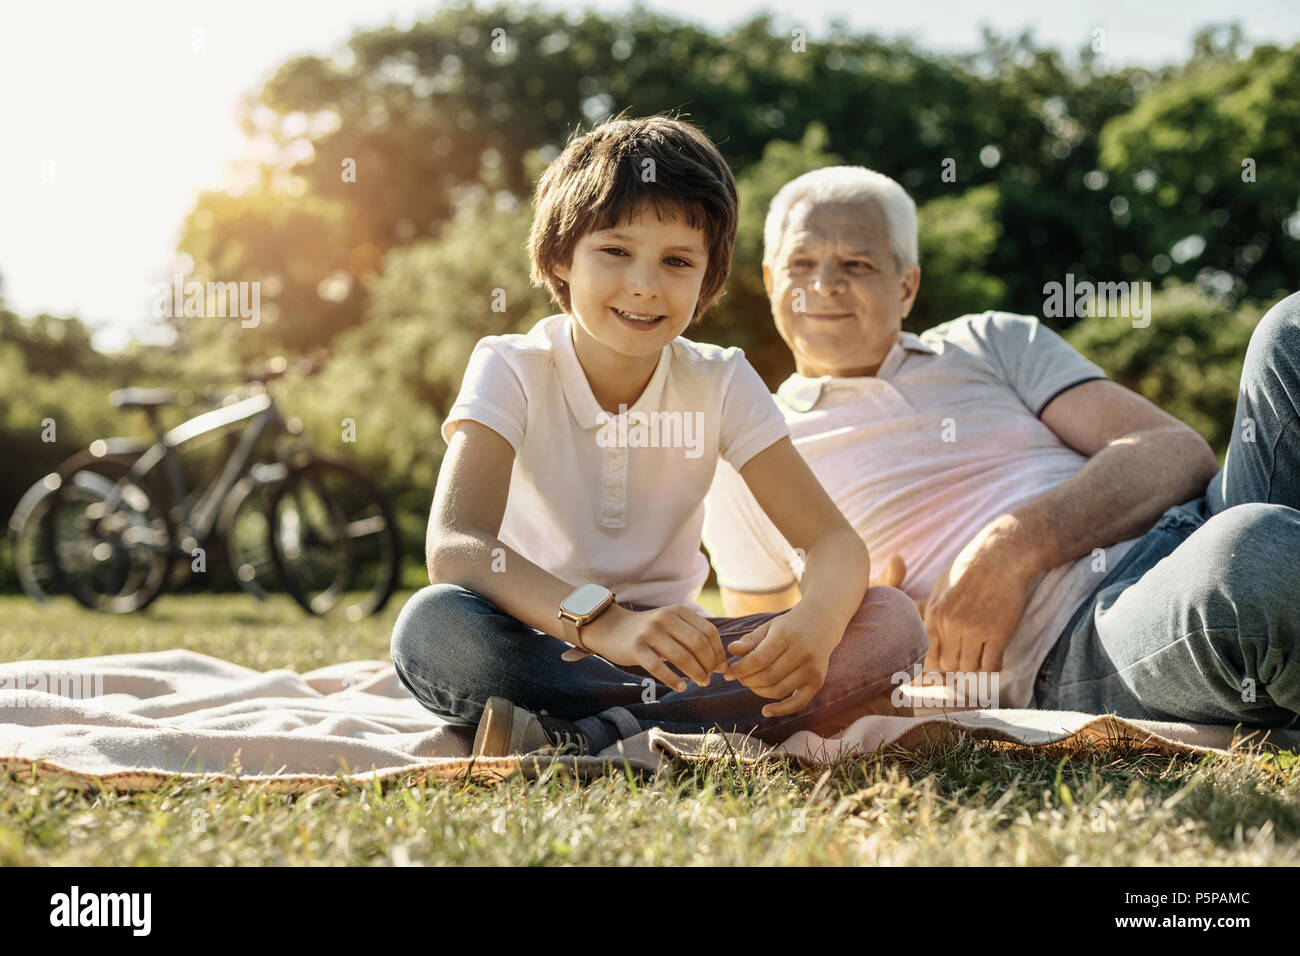 Smiling boy relaxing with his grandpa - Stock Image